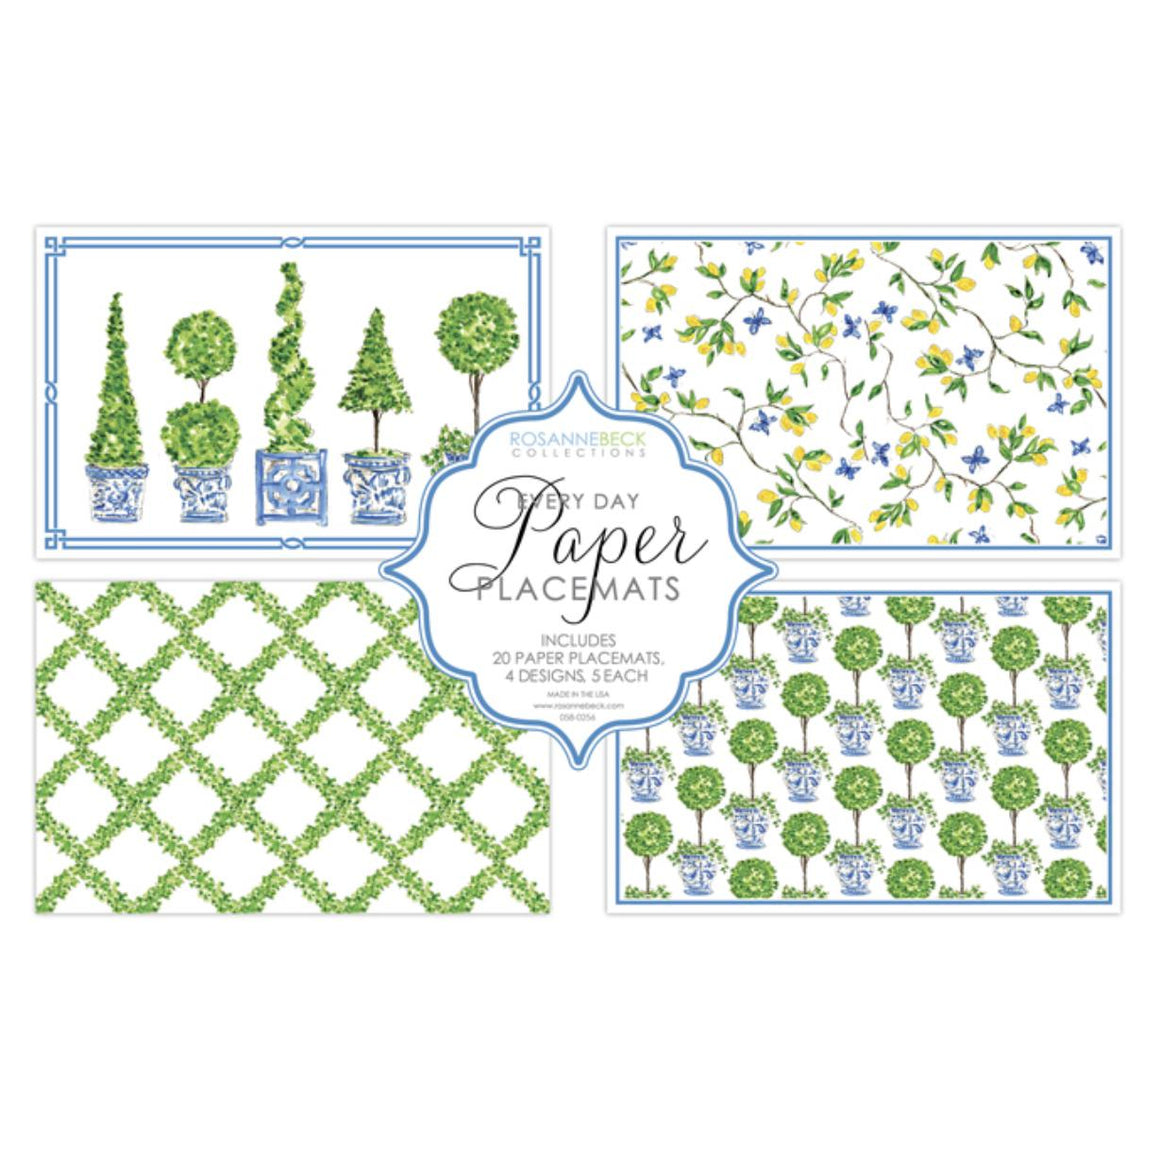 Topiary Boxwood Paper Placemats - The Preppy Bunny